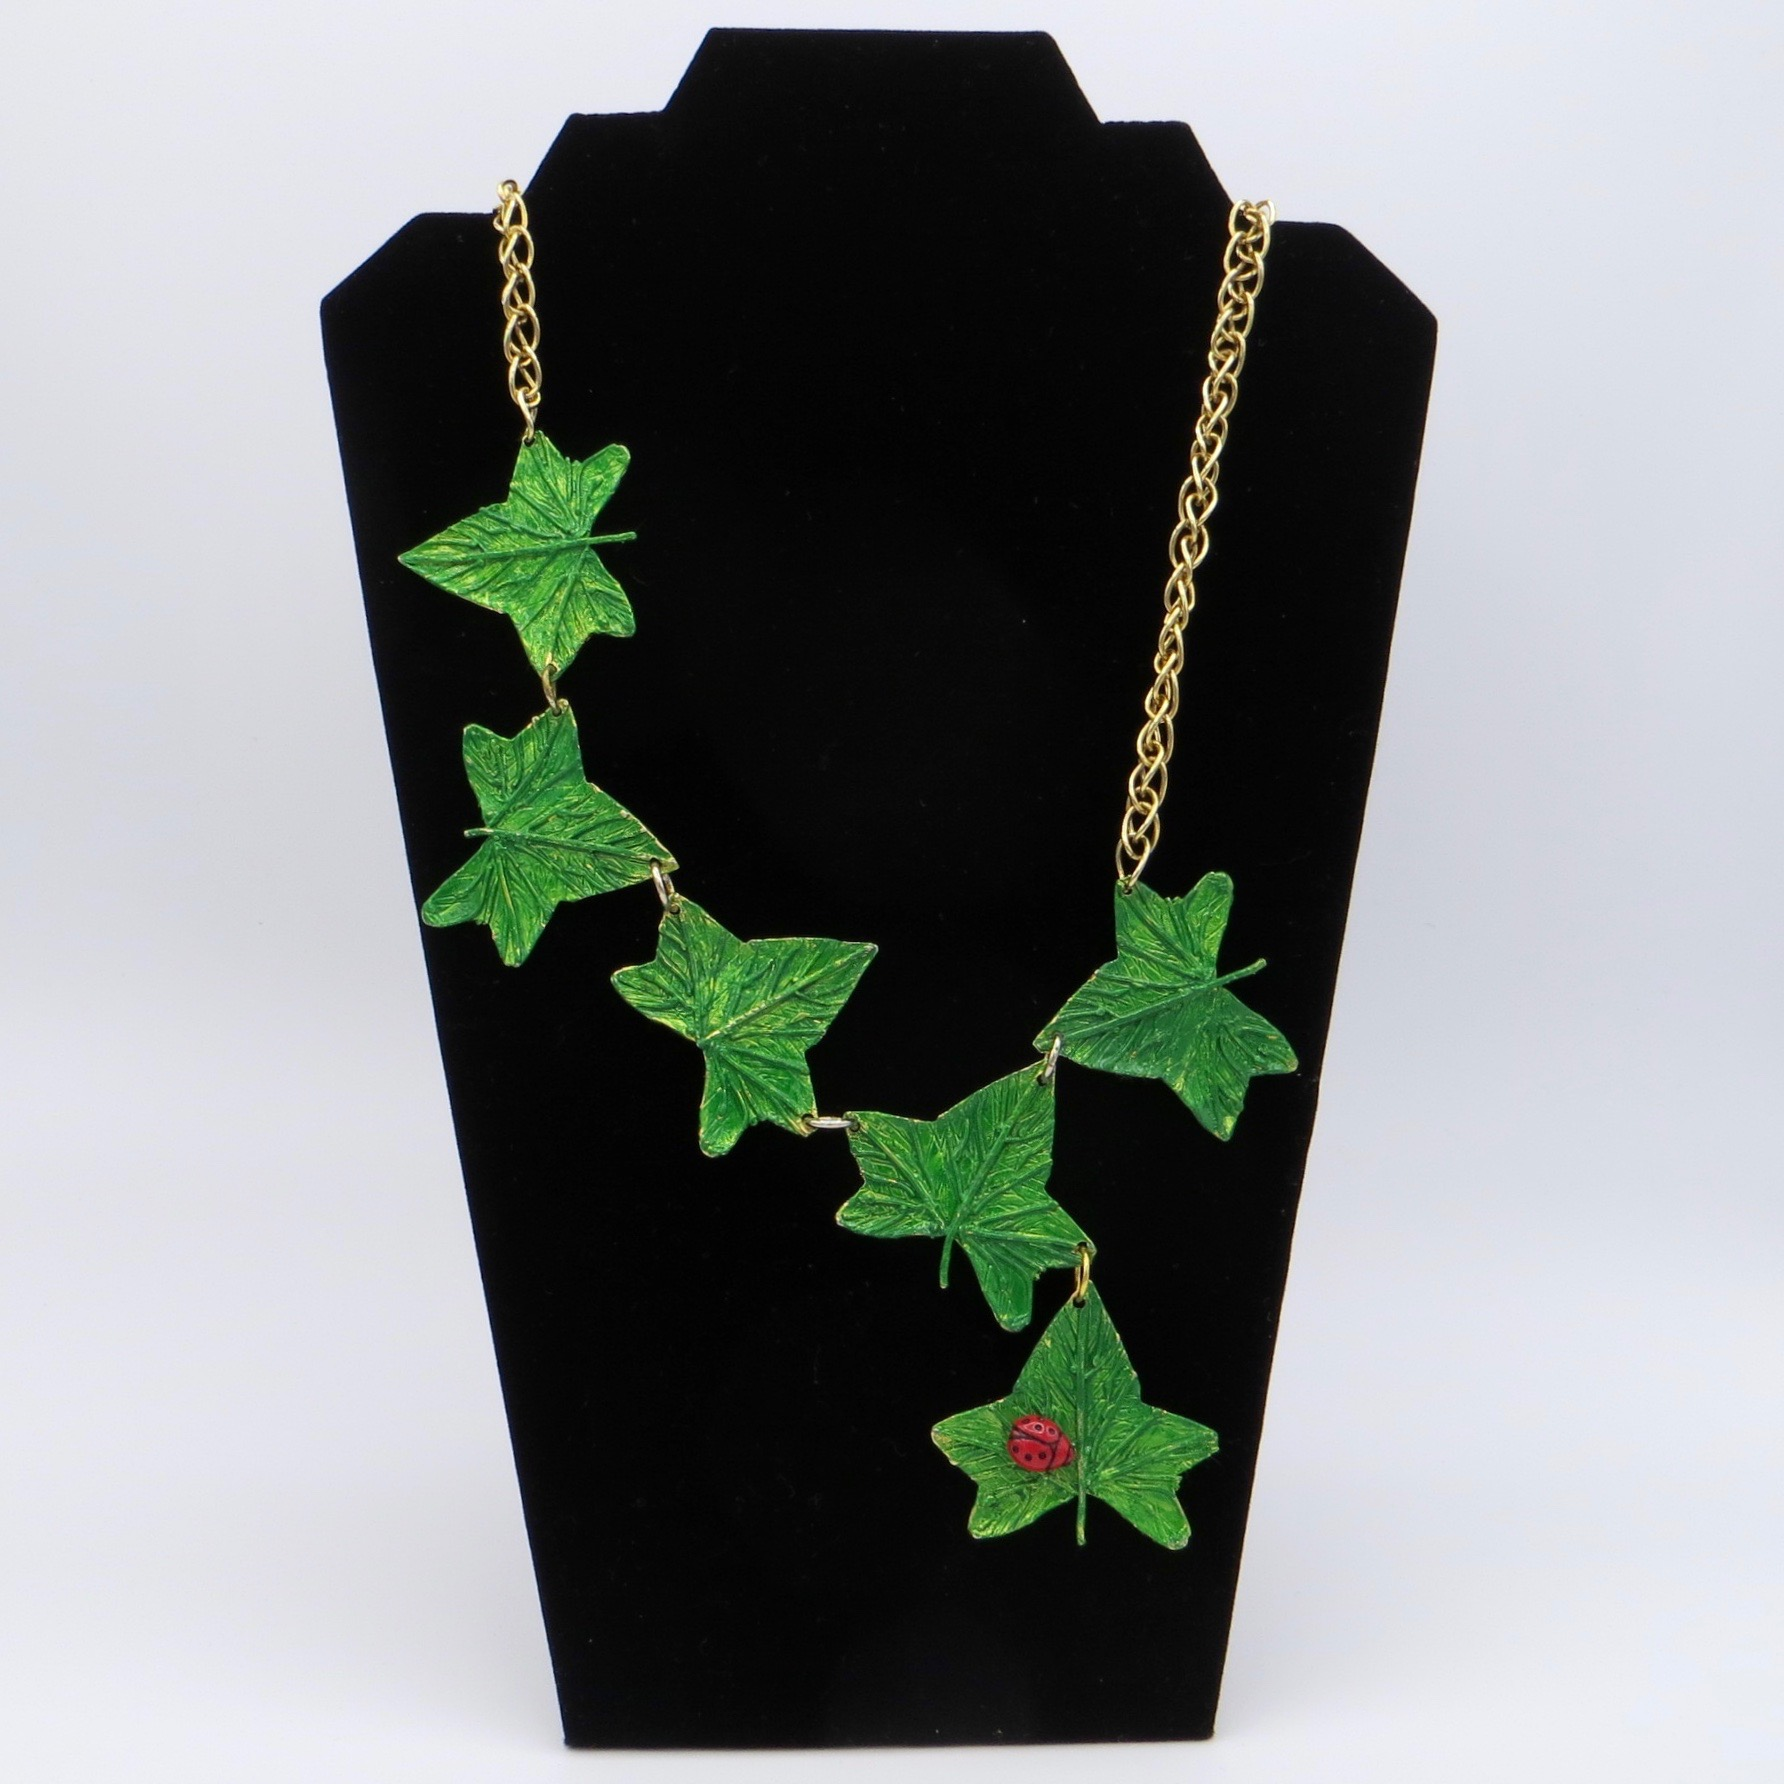 Italian Leaf Necklace